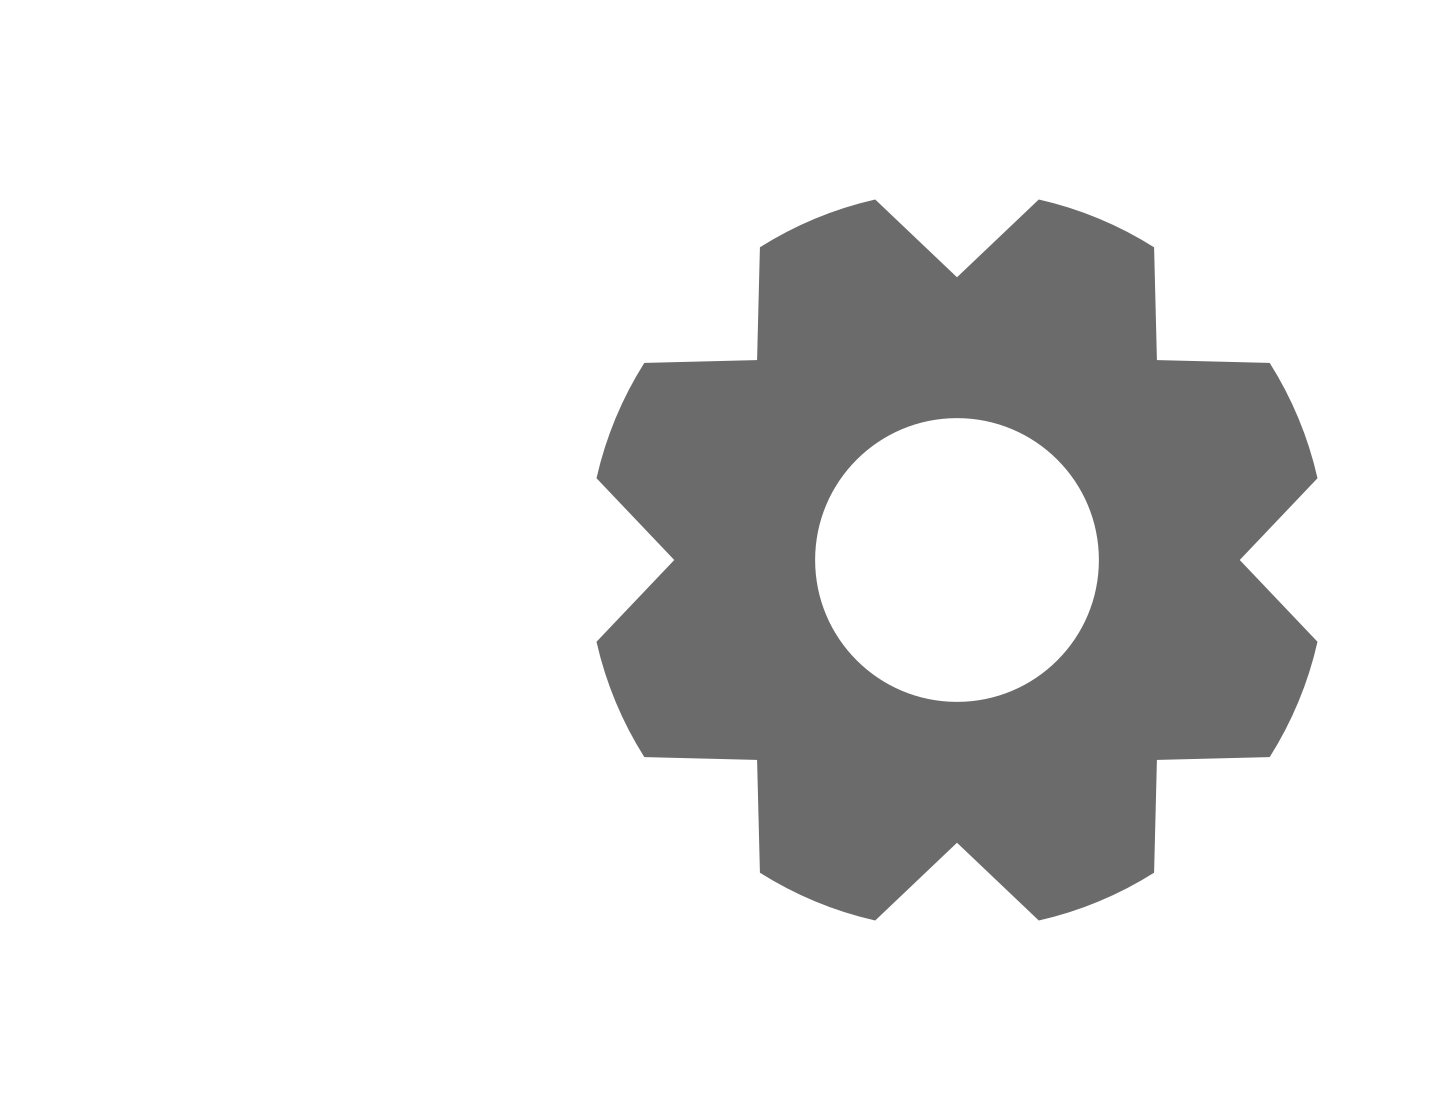 How to make a. Gear clipart gear icon